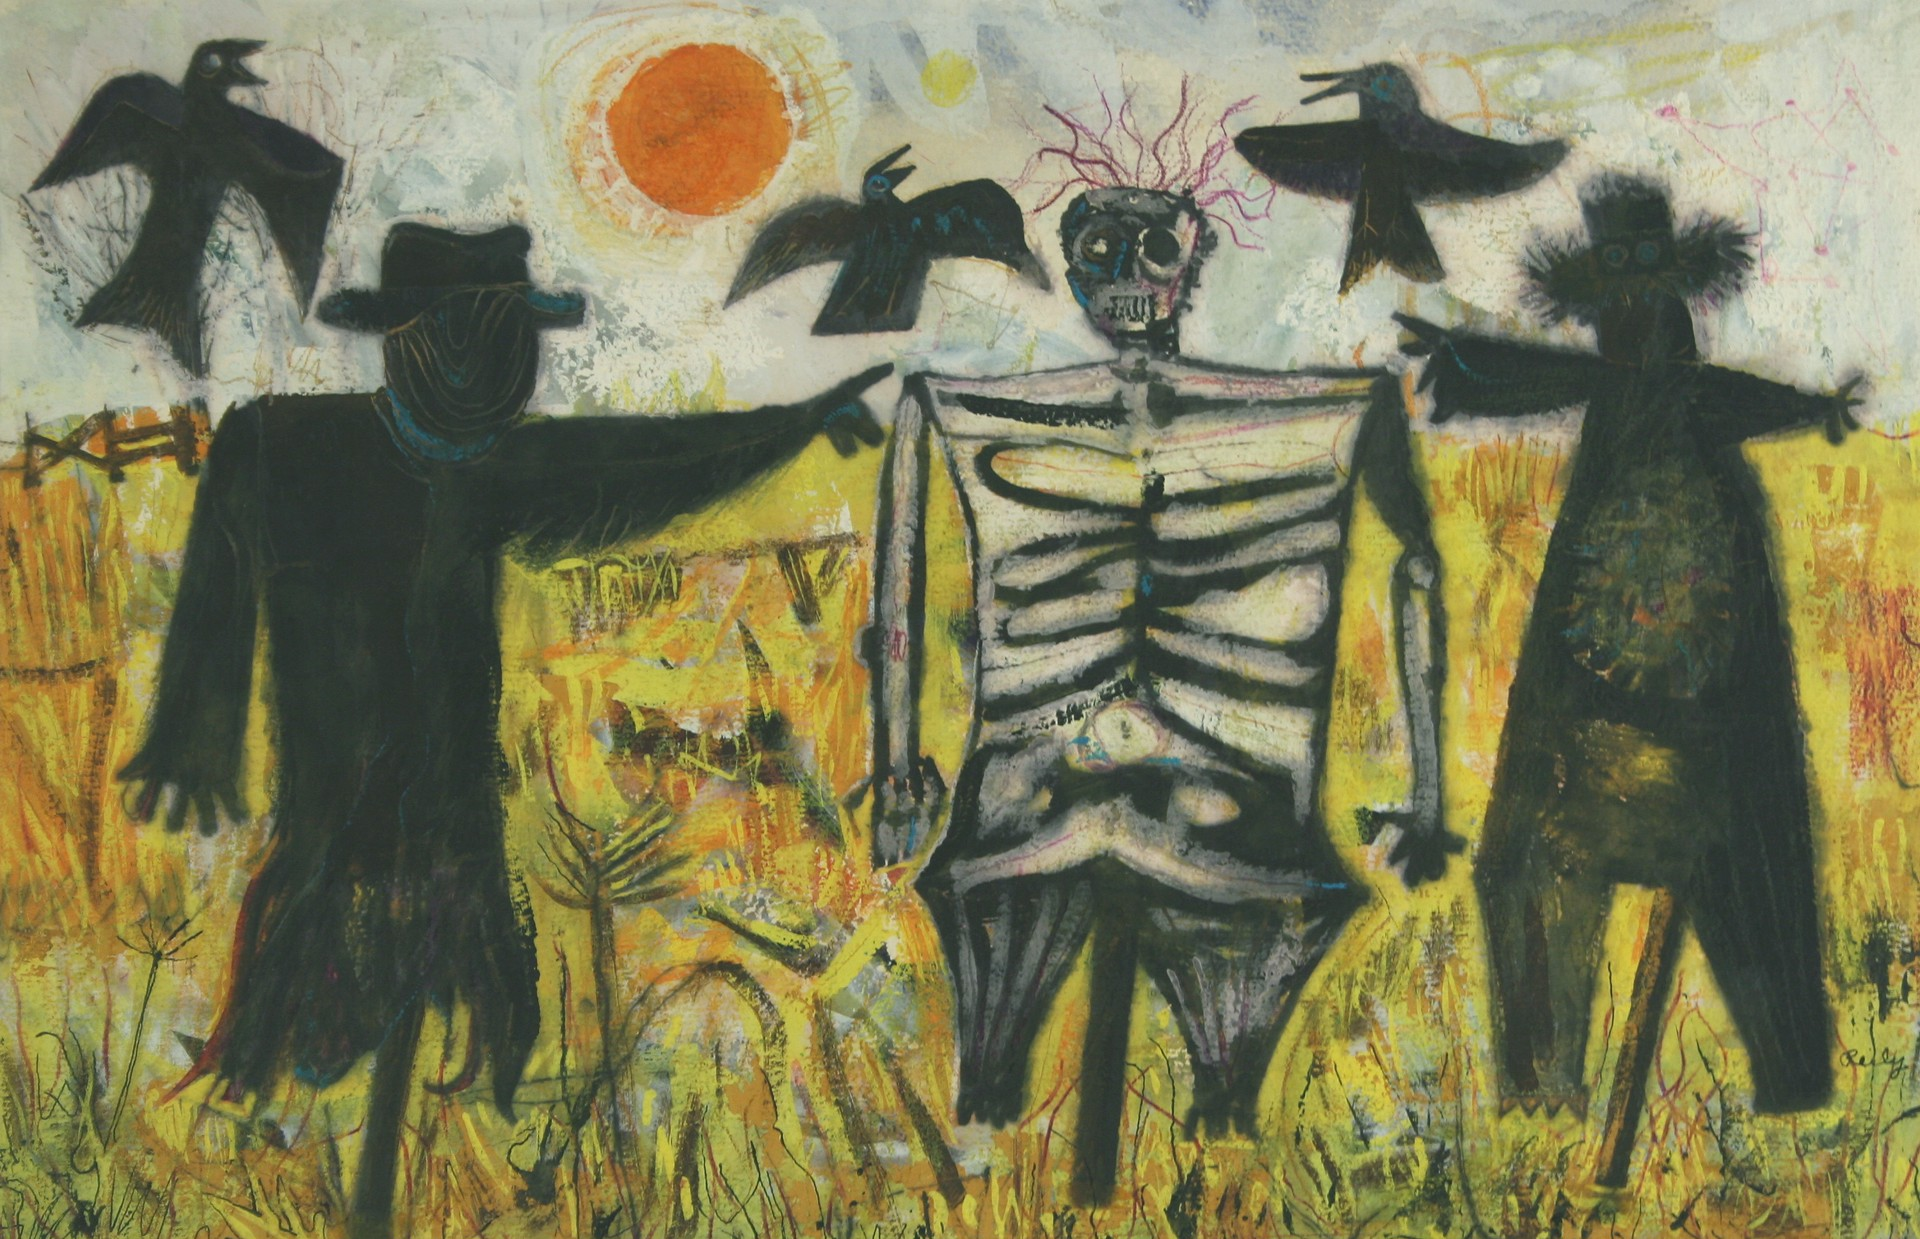 Scarecrows in a Field by Bill Reily